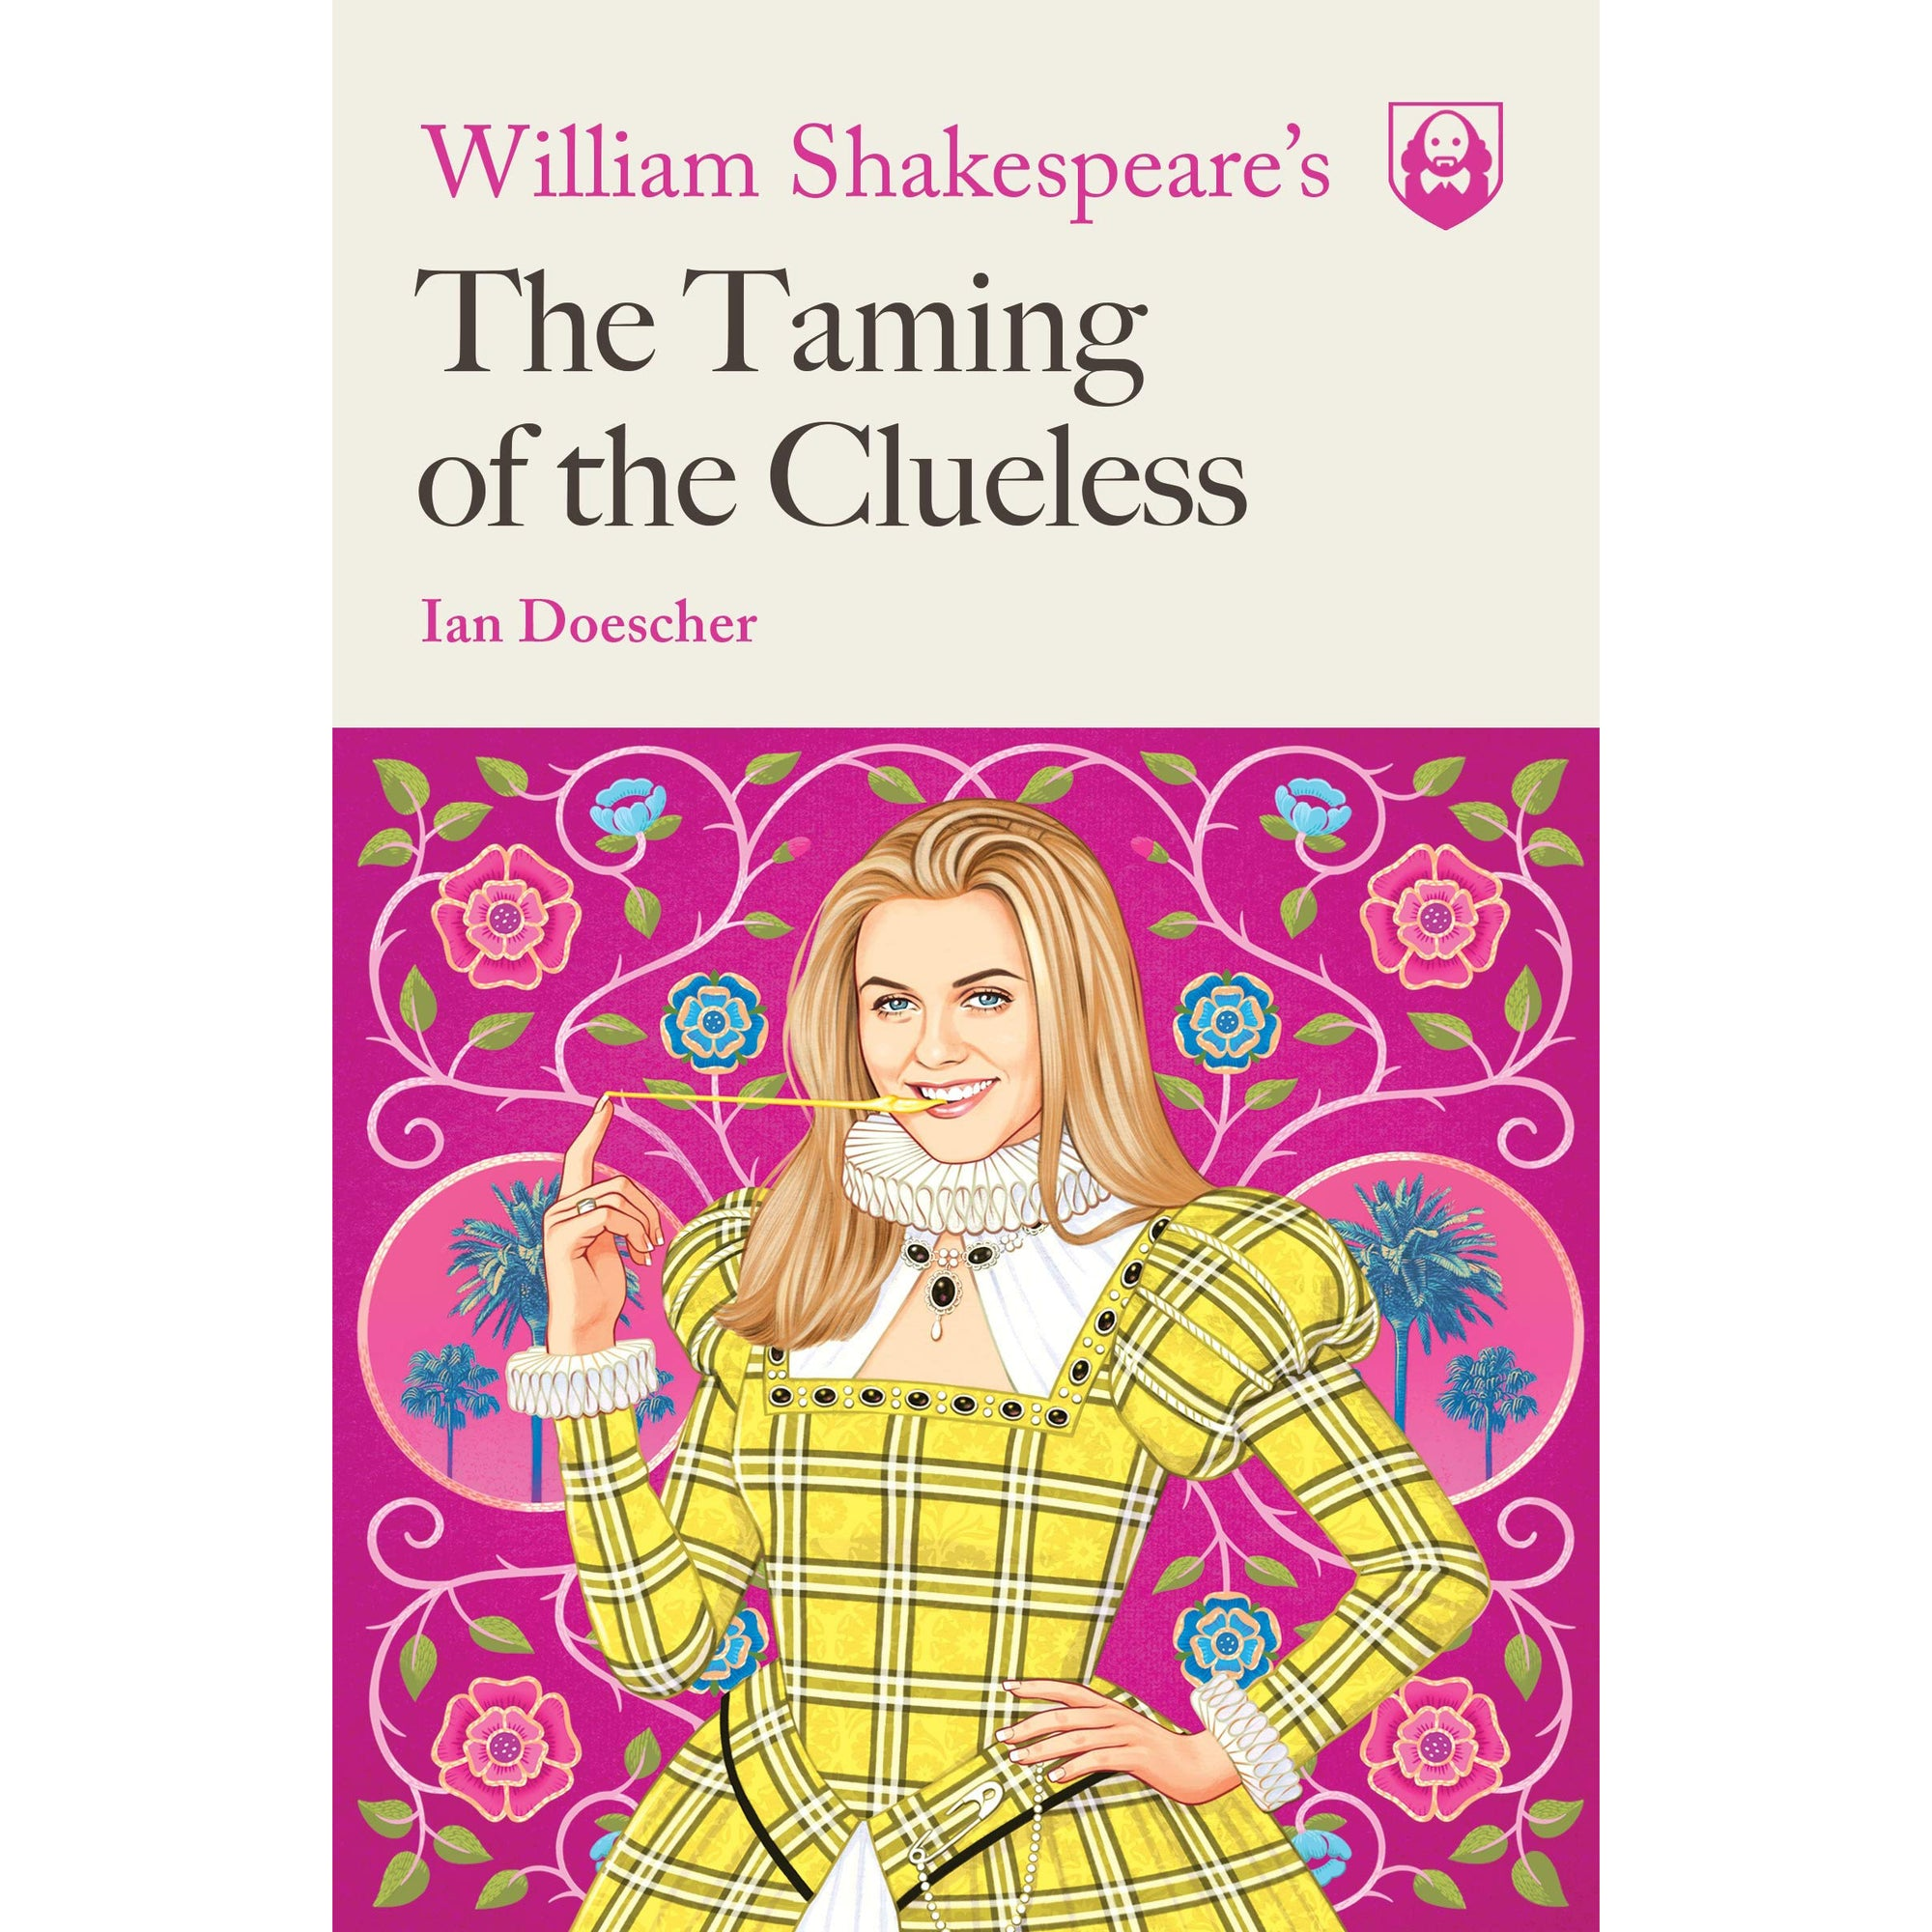 Cover of William Shakespeare's The Taming of the Clueless